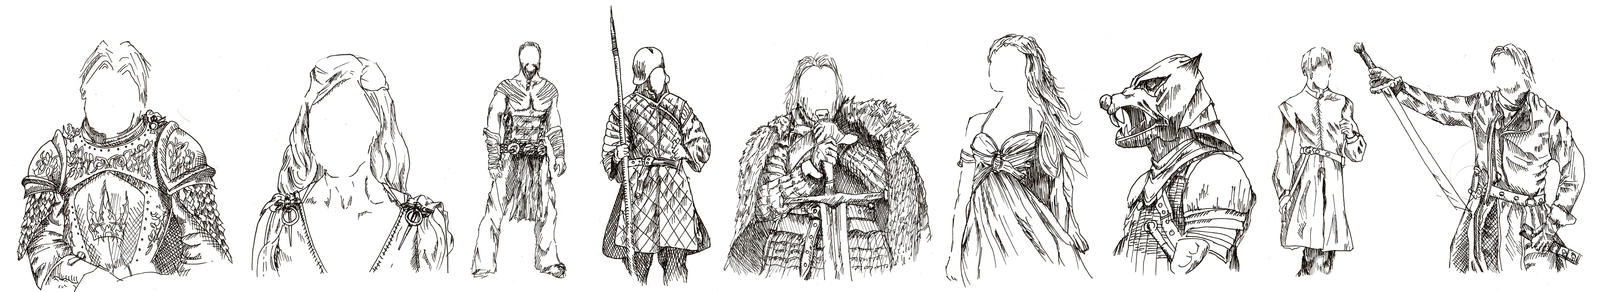 The Fashion in Game Of Thrones by FrozenArk